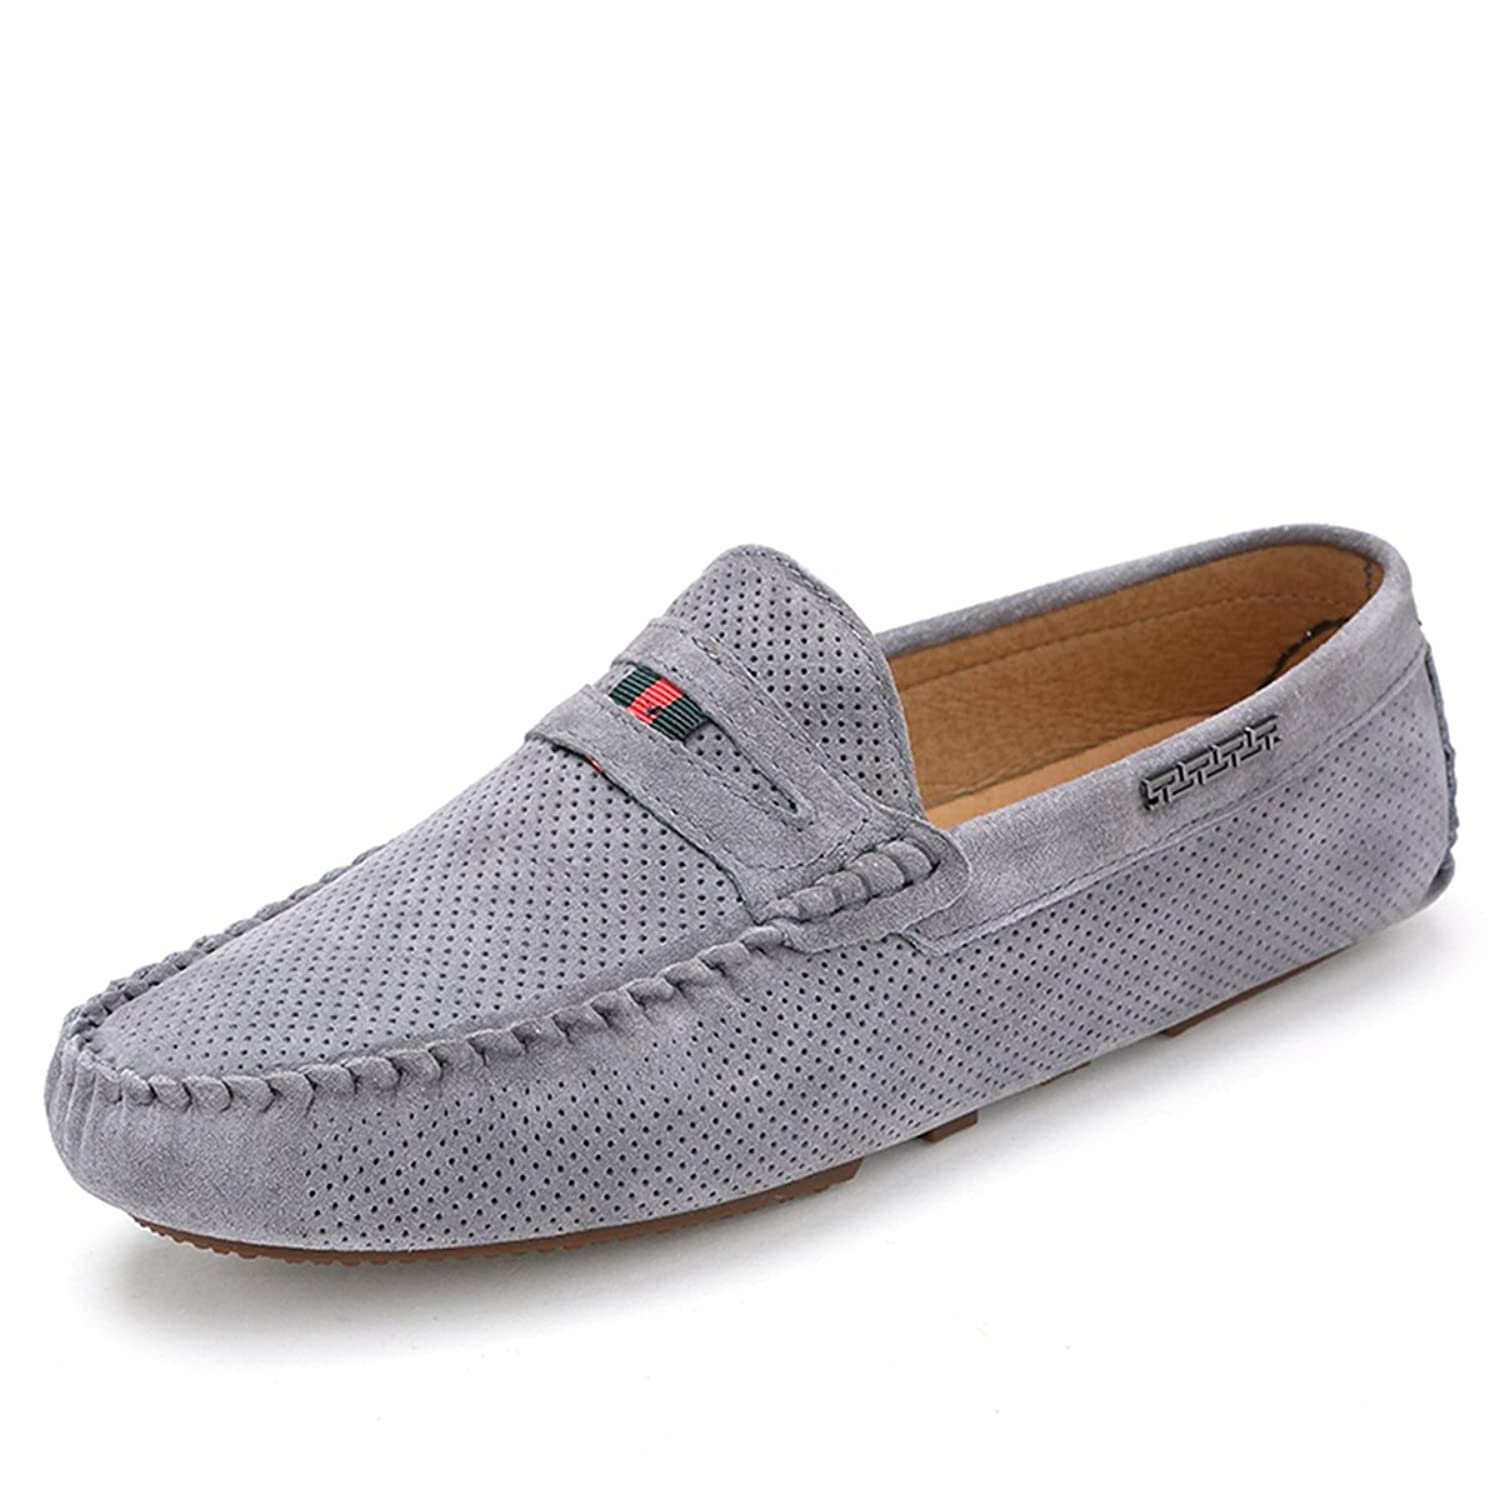 Cheap Mizuamor Mens Suede Penny Loafer Flats Casual Leather Shoe